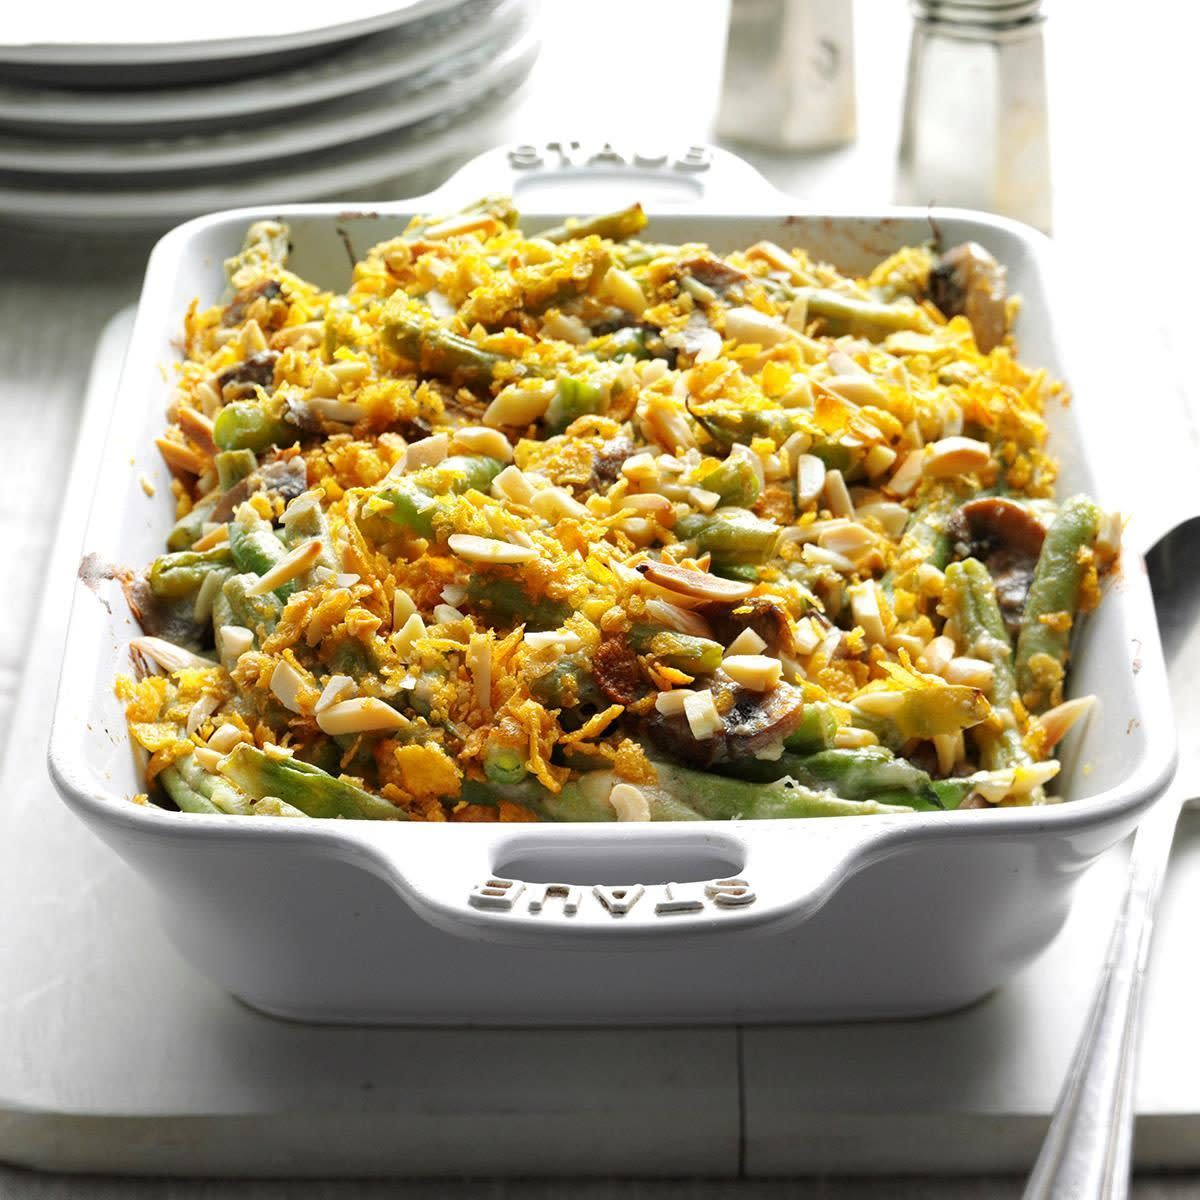 The green bean casserole was launched in 1955. It has remained a staple of holiday meals since then